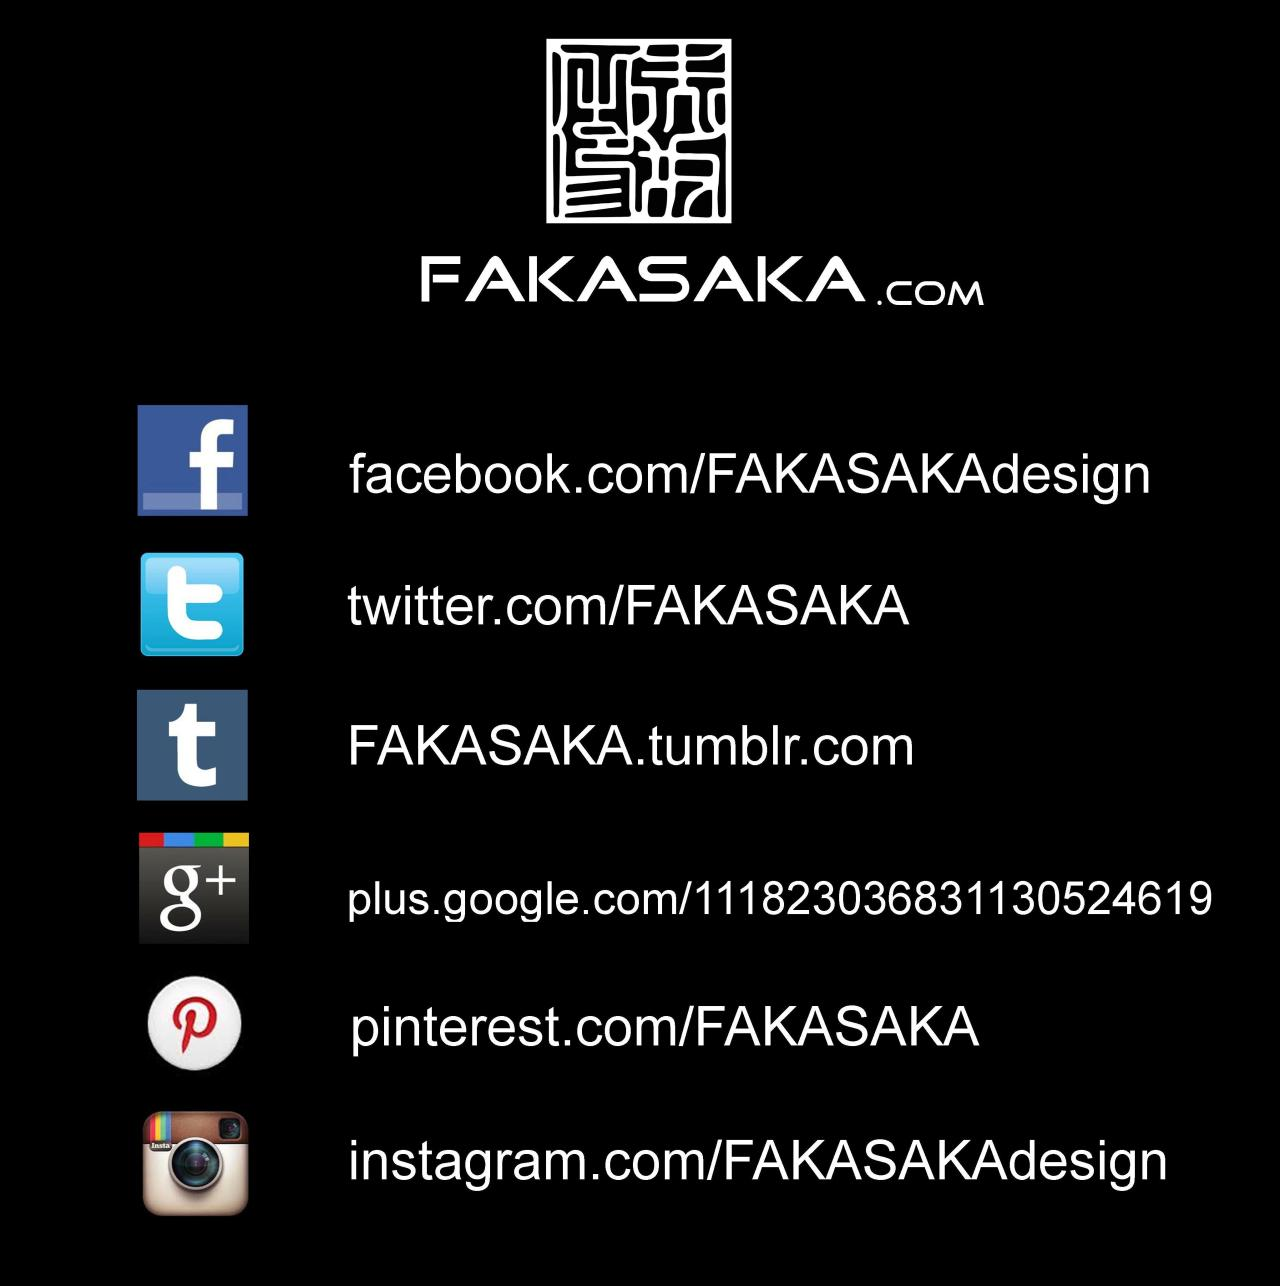 FOLLOW FAKASAKA DESIGN AND JEWELRY | www.FAKASAKA.com